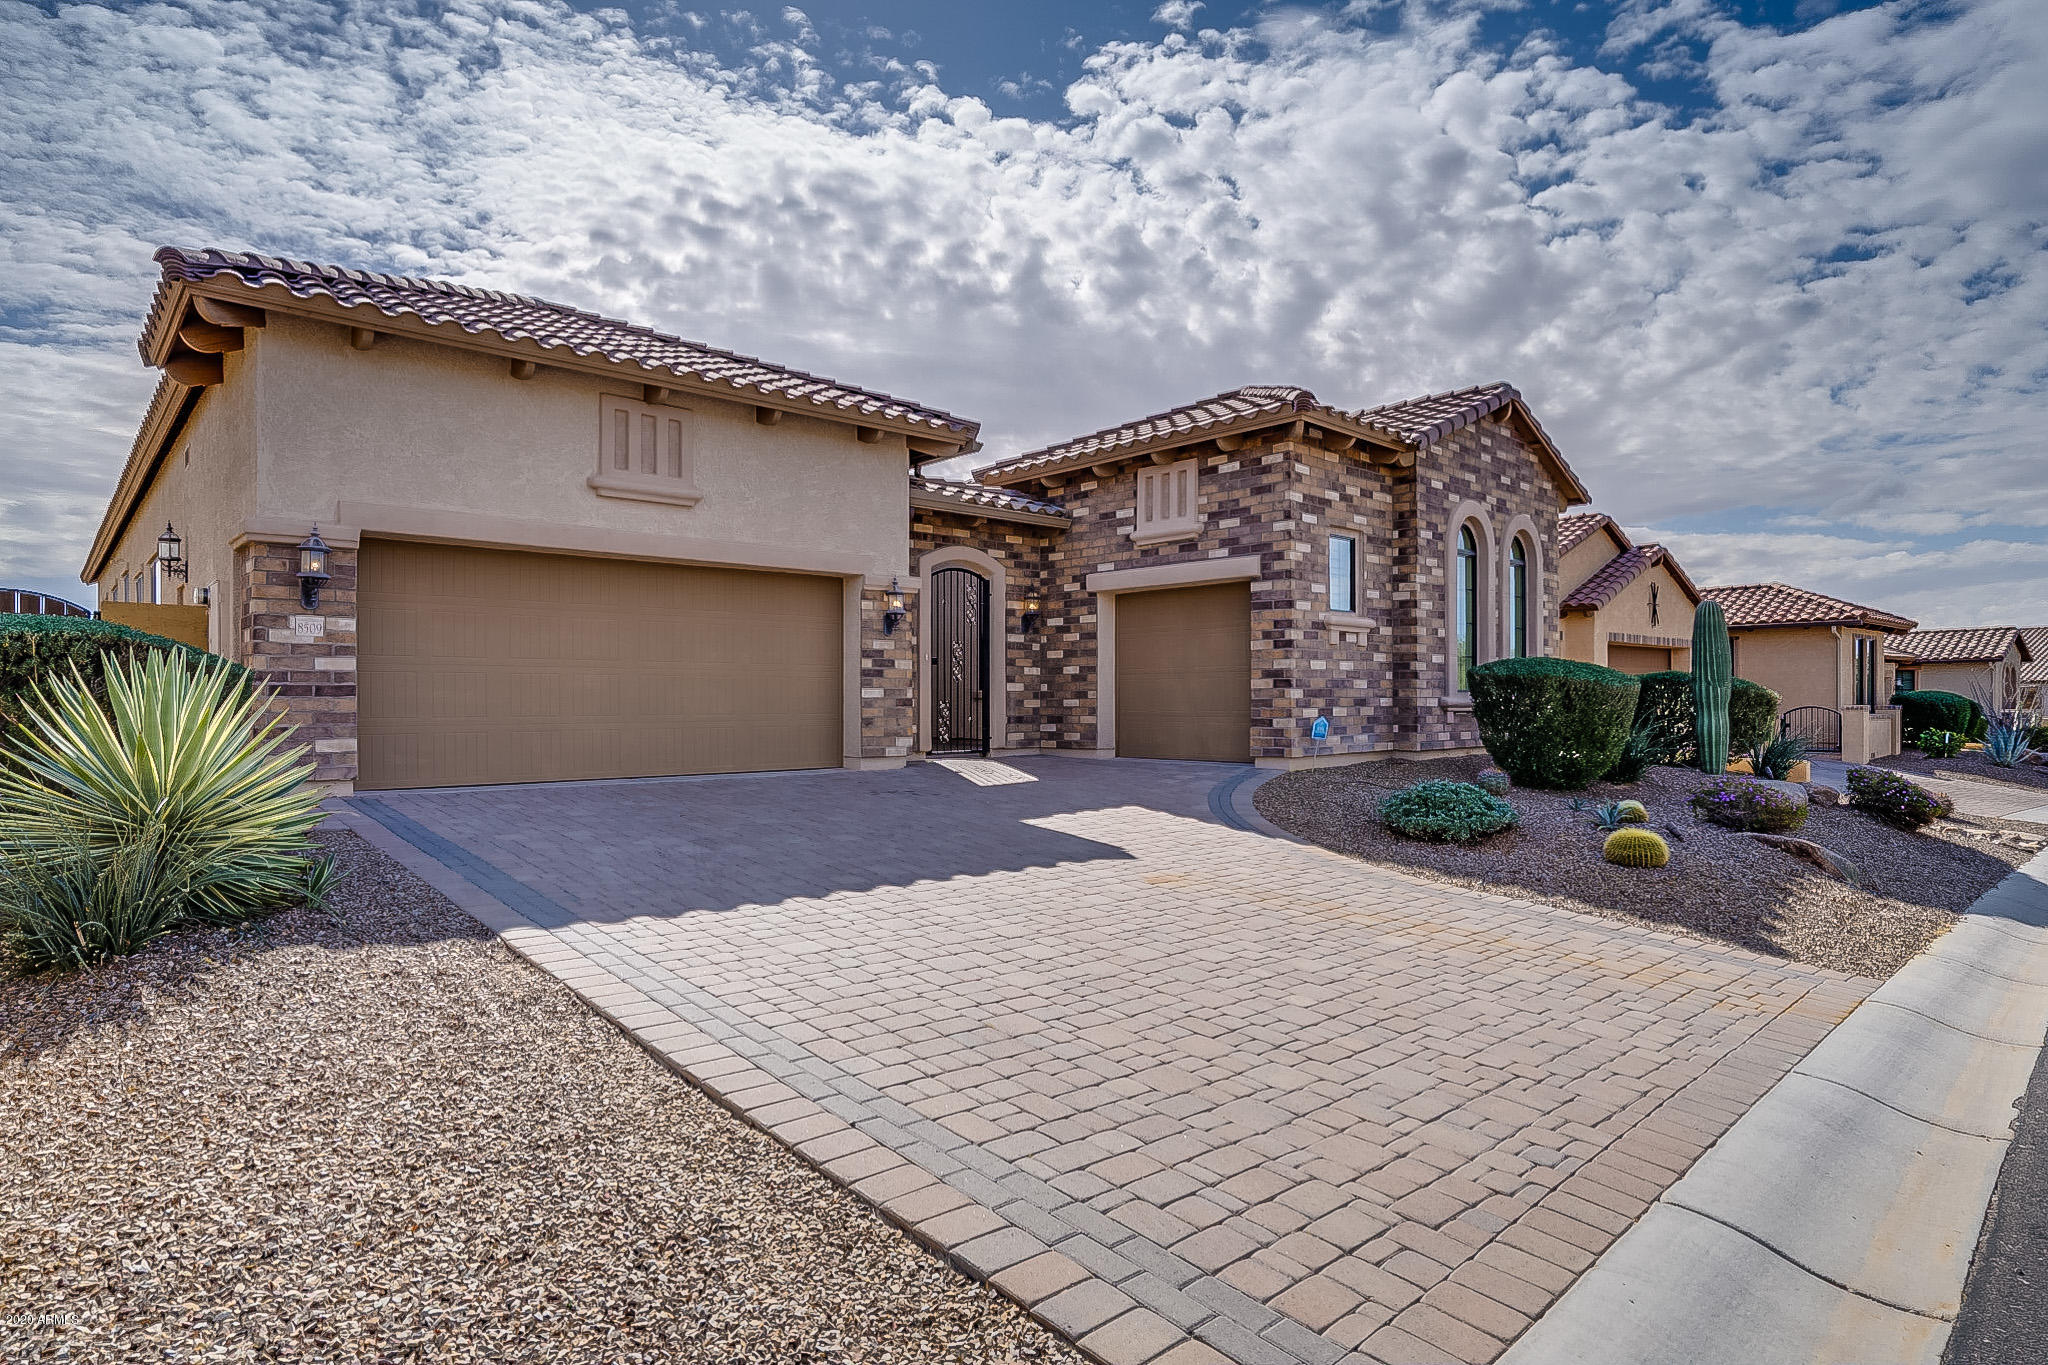 Photo of 8509 E Lynwood Street, Mesa, AZ 85207